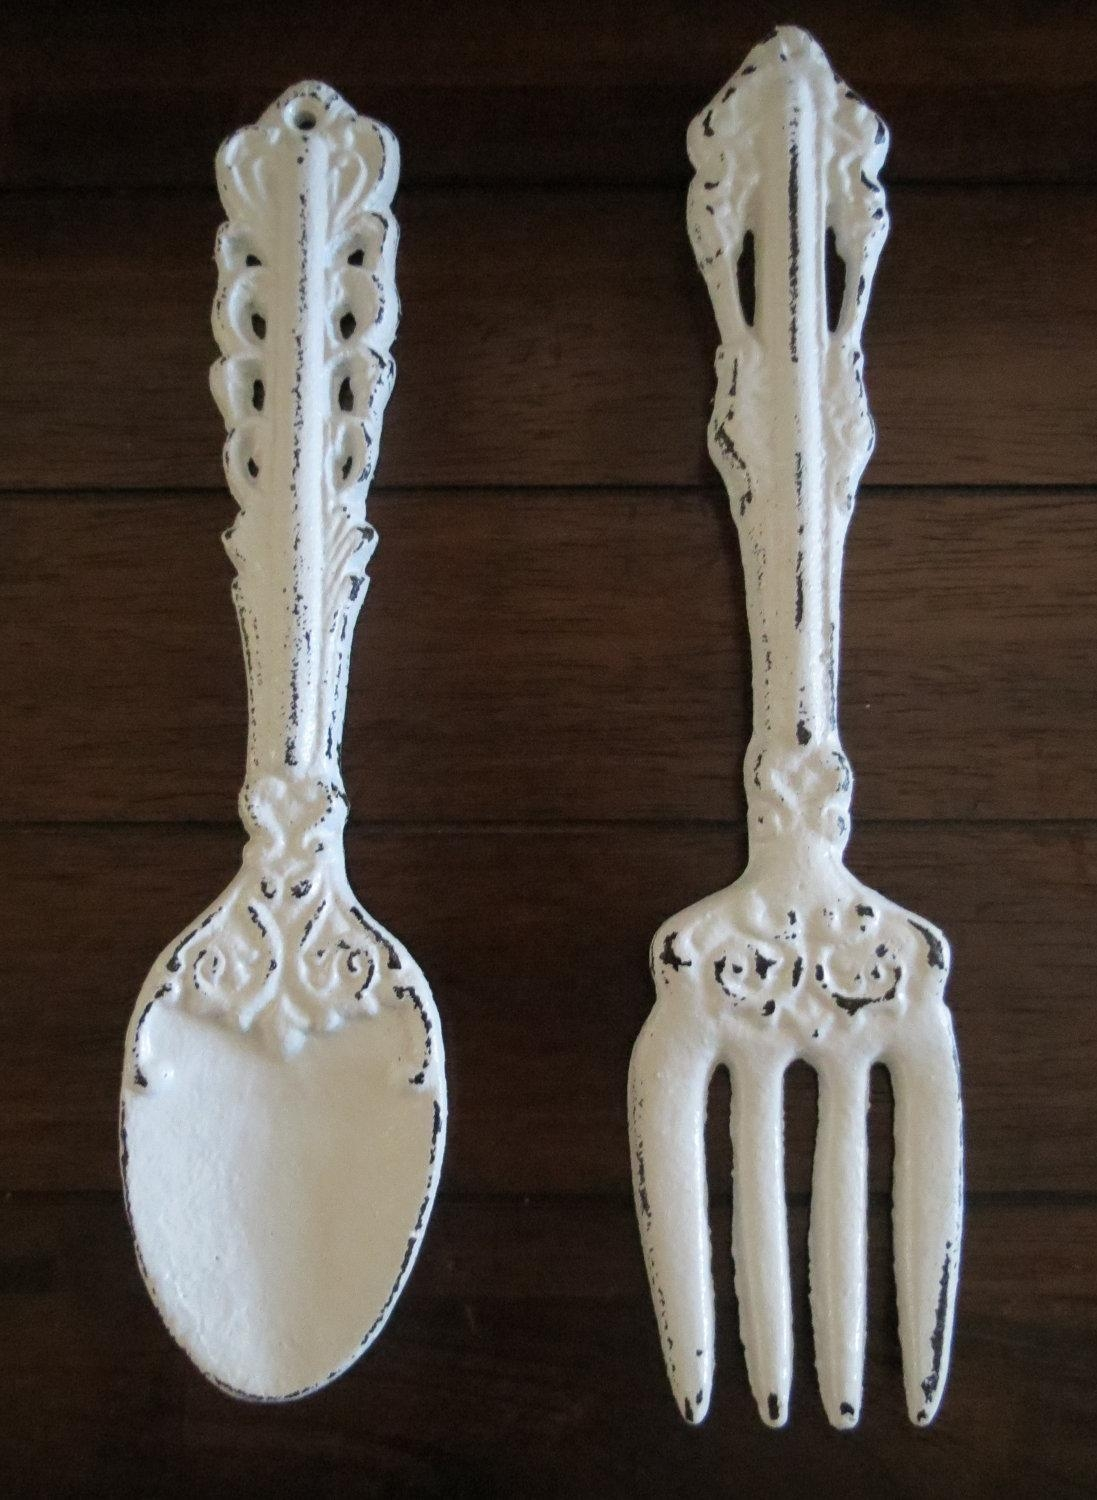 Fork And Spoon Wall Art / Antique White Or Pick Color / Large With Regard To Oversized Cutlery Wall Art (View 8 of 20)